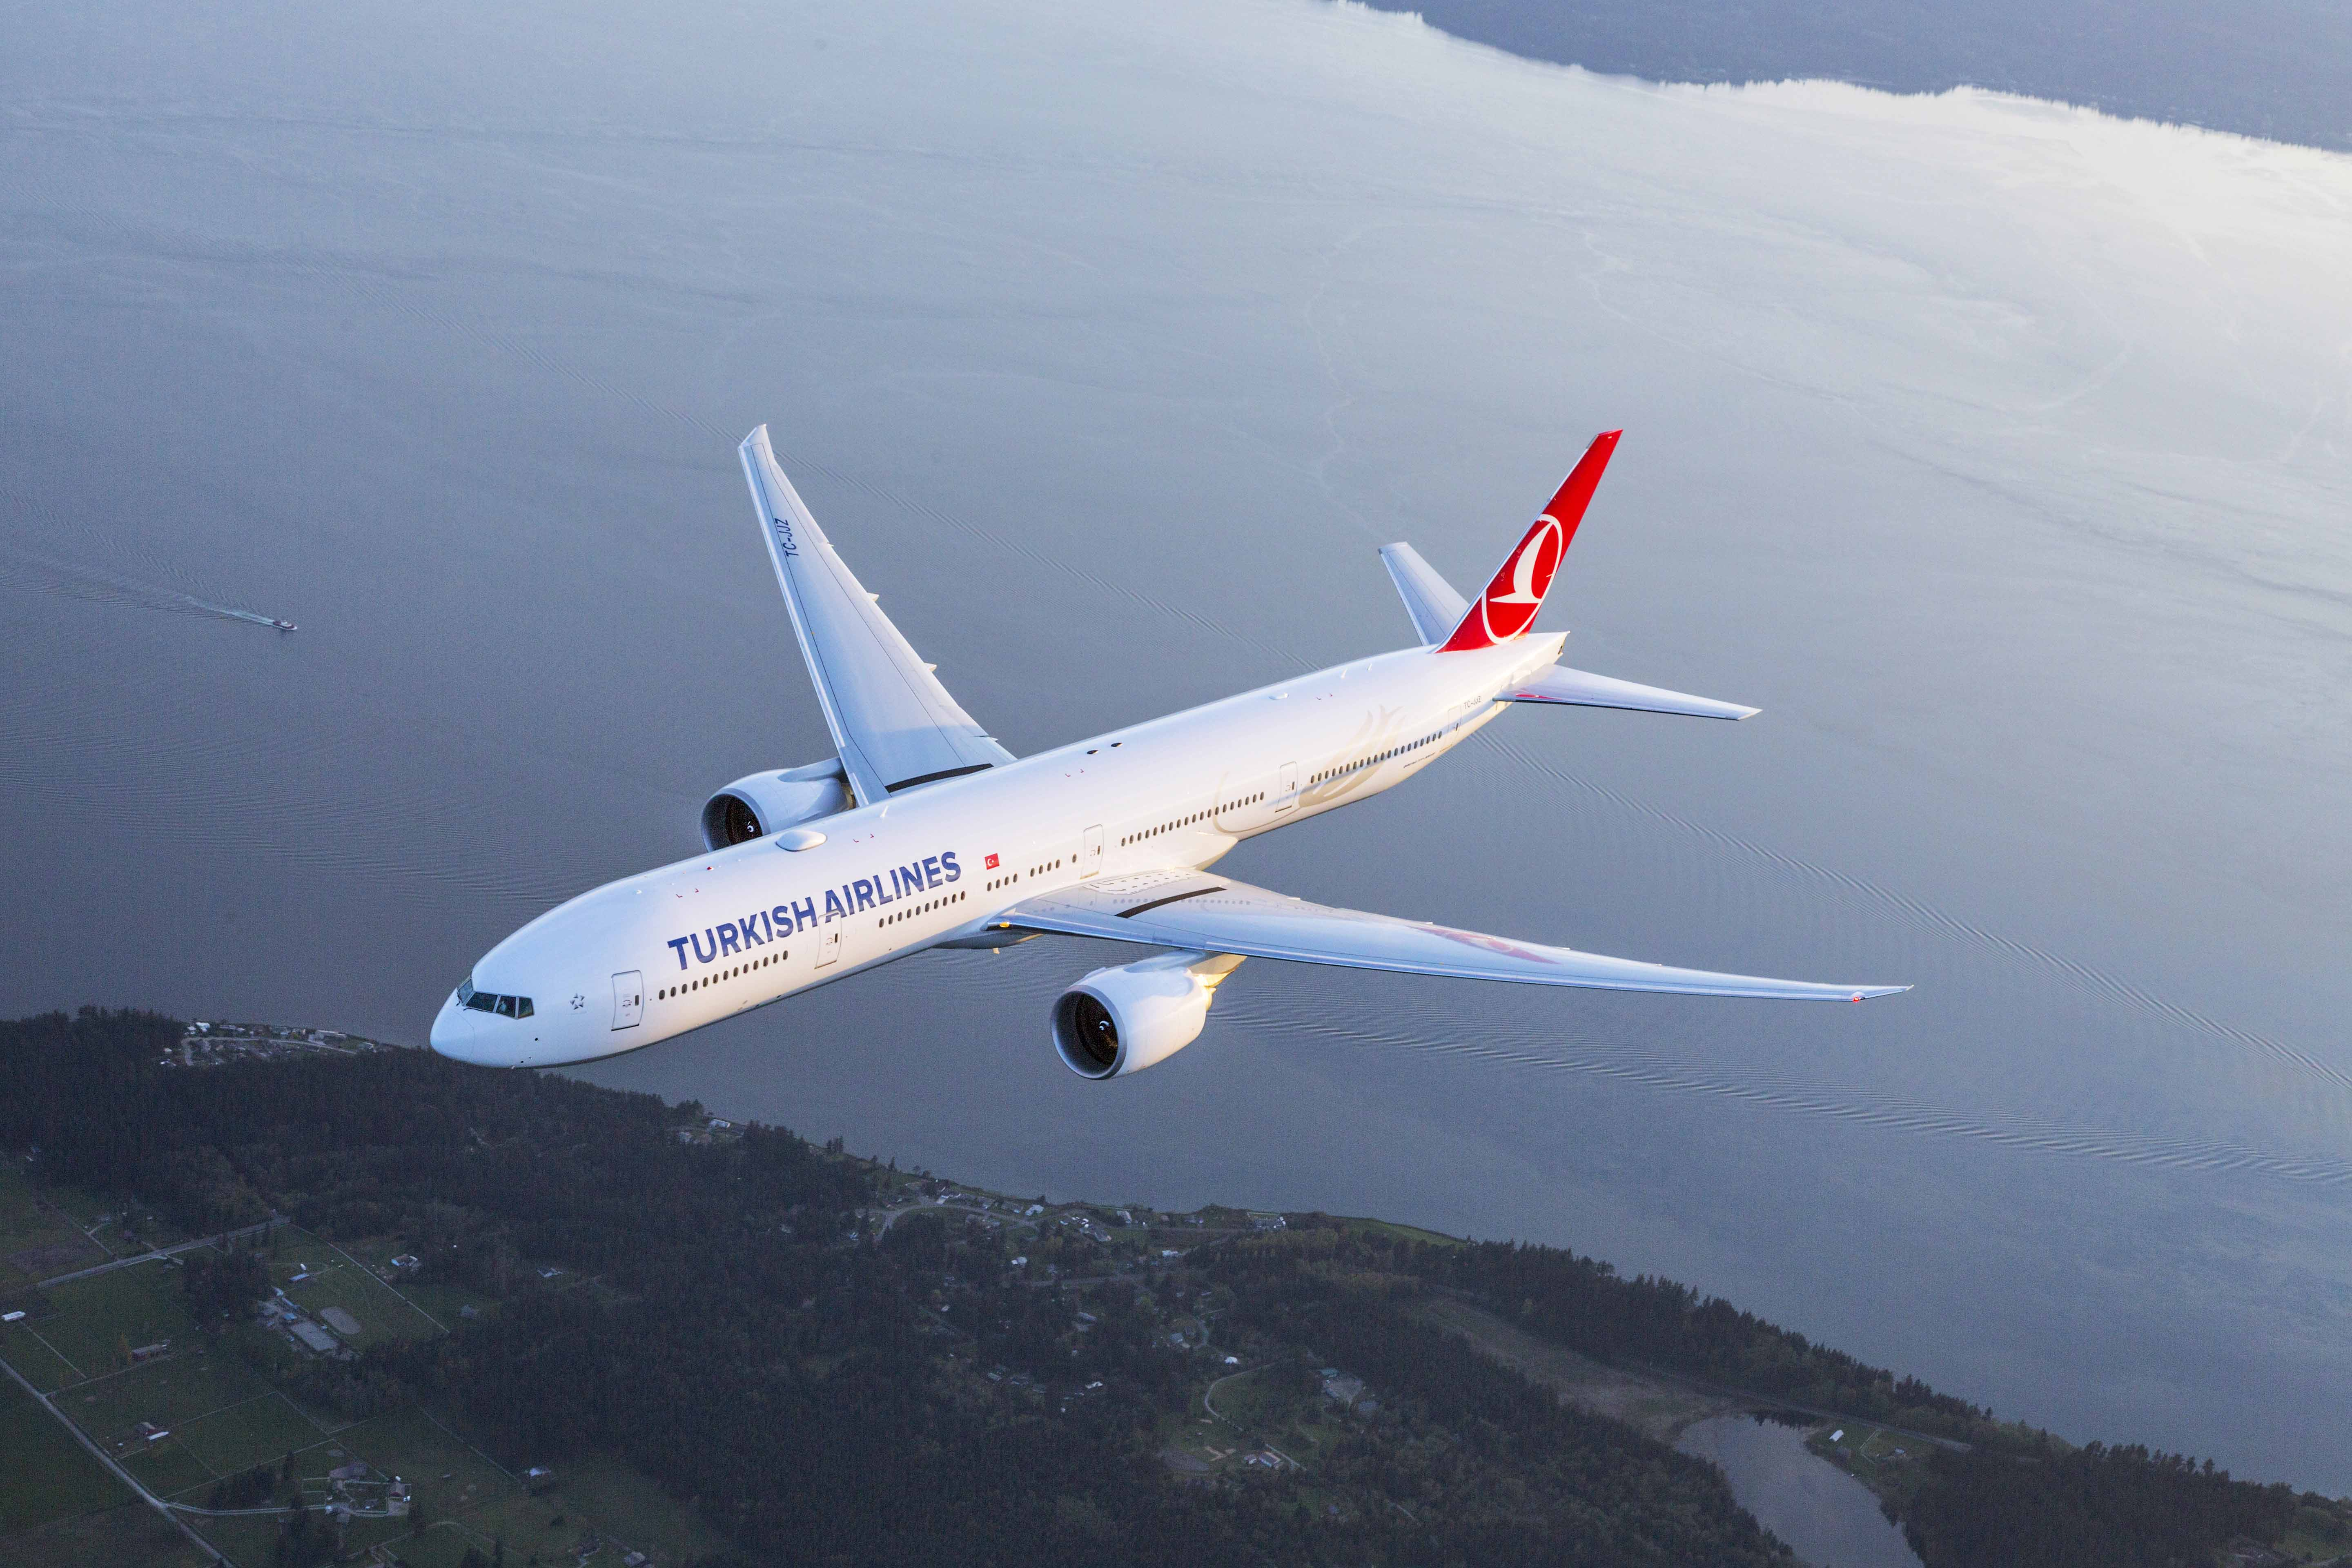 Turkish Airlines records highest number of passengers in 2017